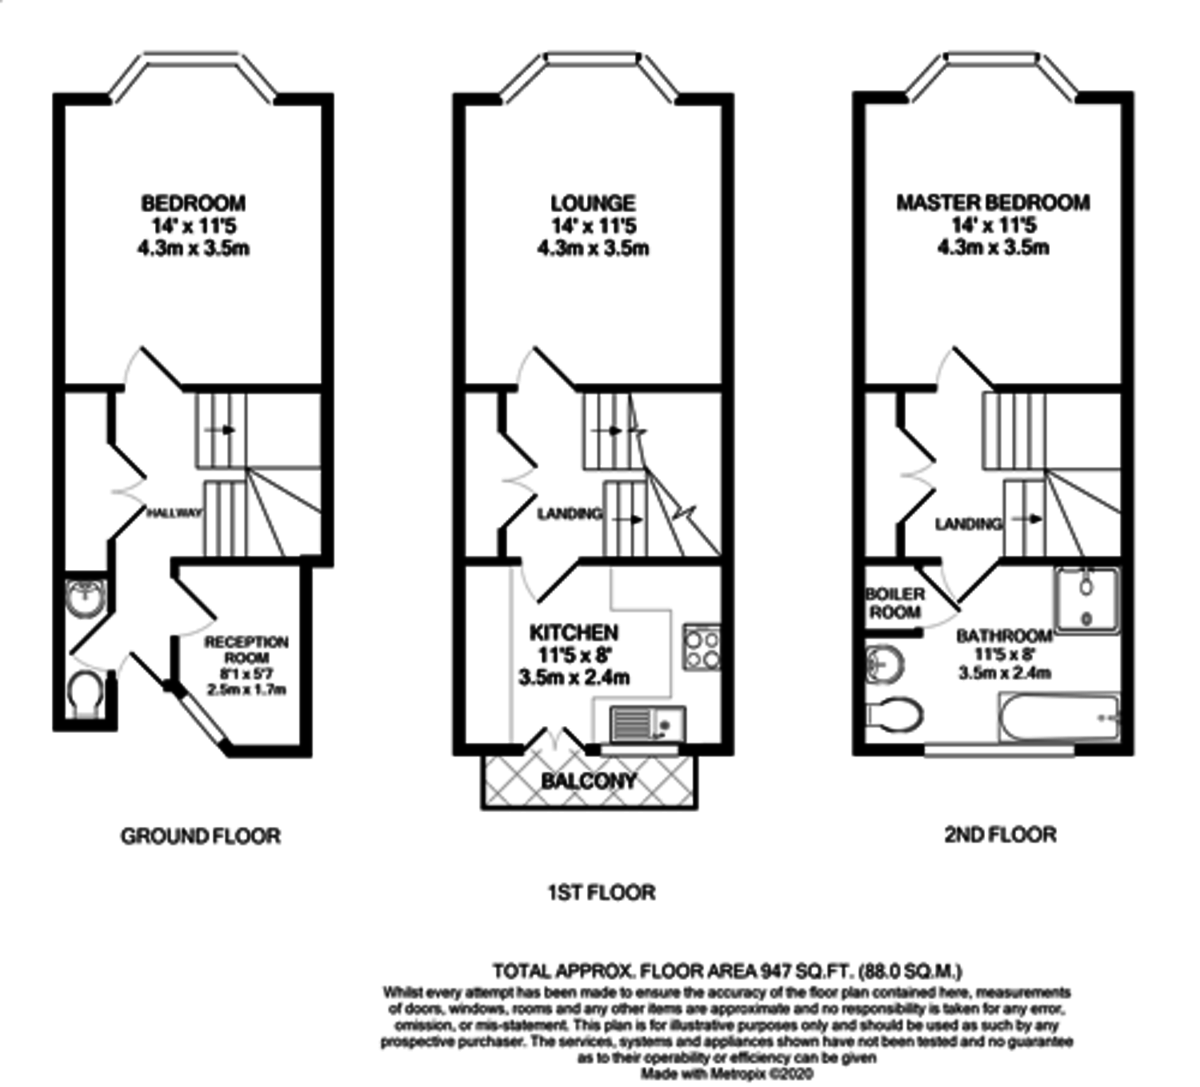 Kings Court, 25 Cox Street, St. Pauls Square floorplan 1 of 1